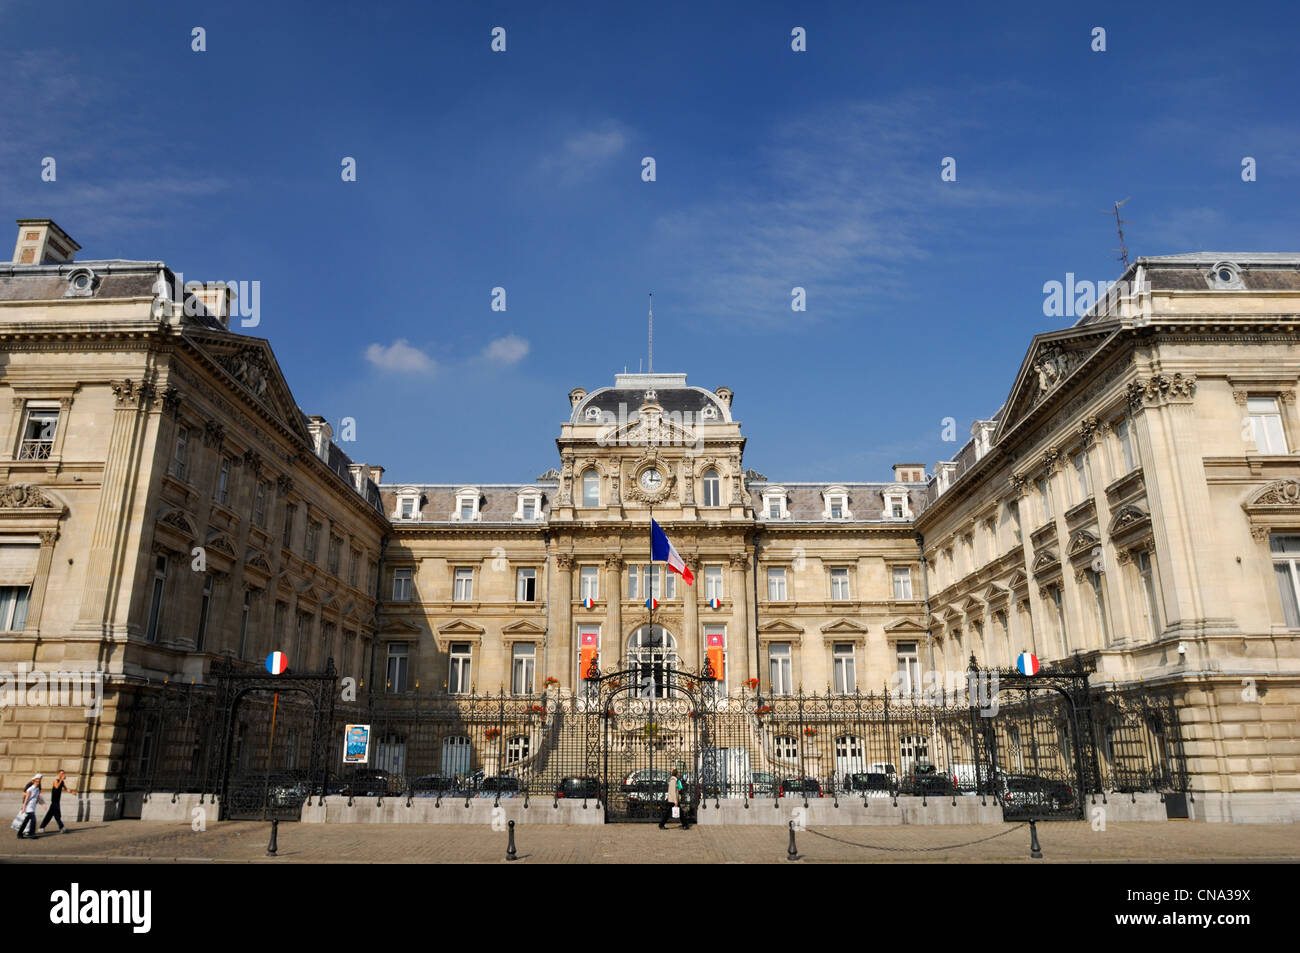 France, Nord, Lille, Republic square, the Prefecture of Lille on the Republic square - Stock Image